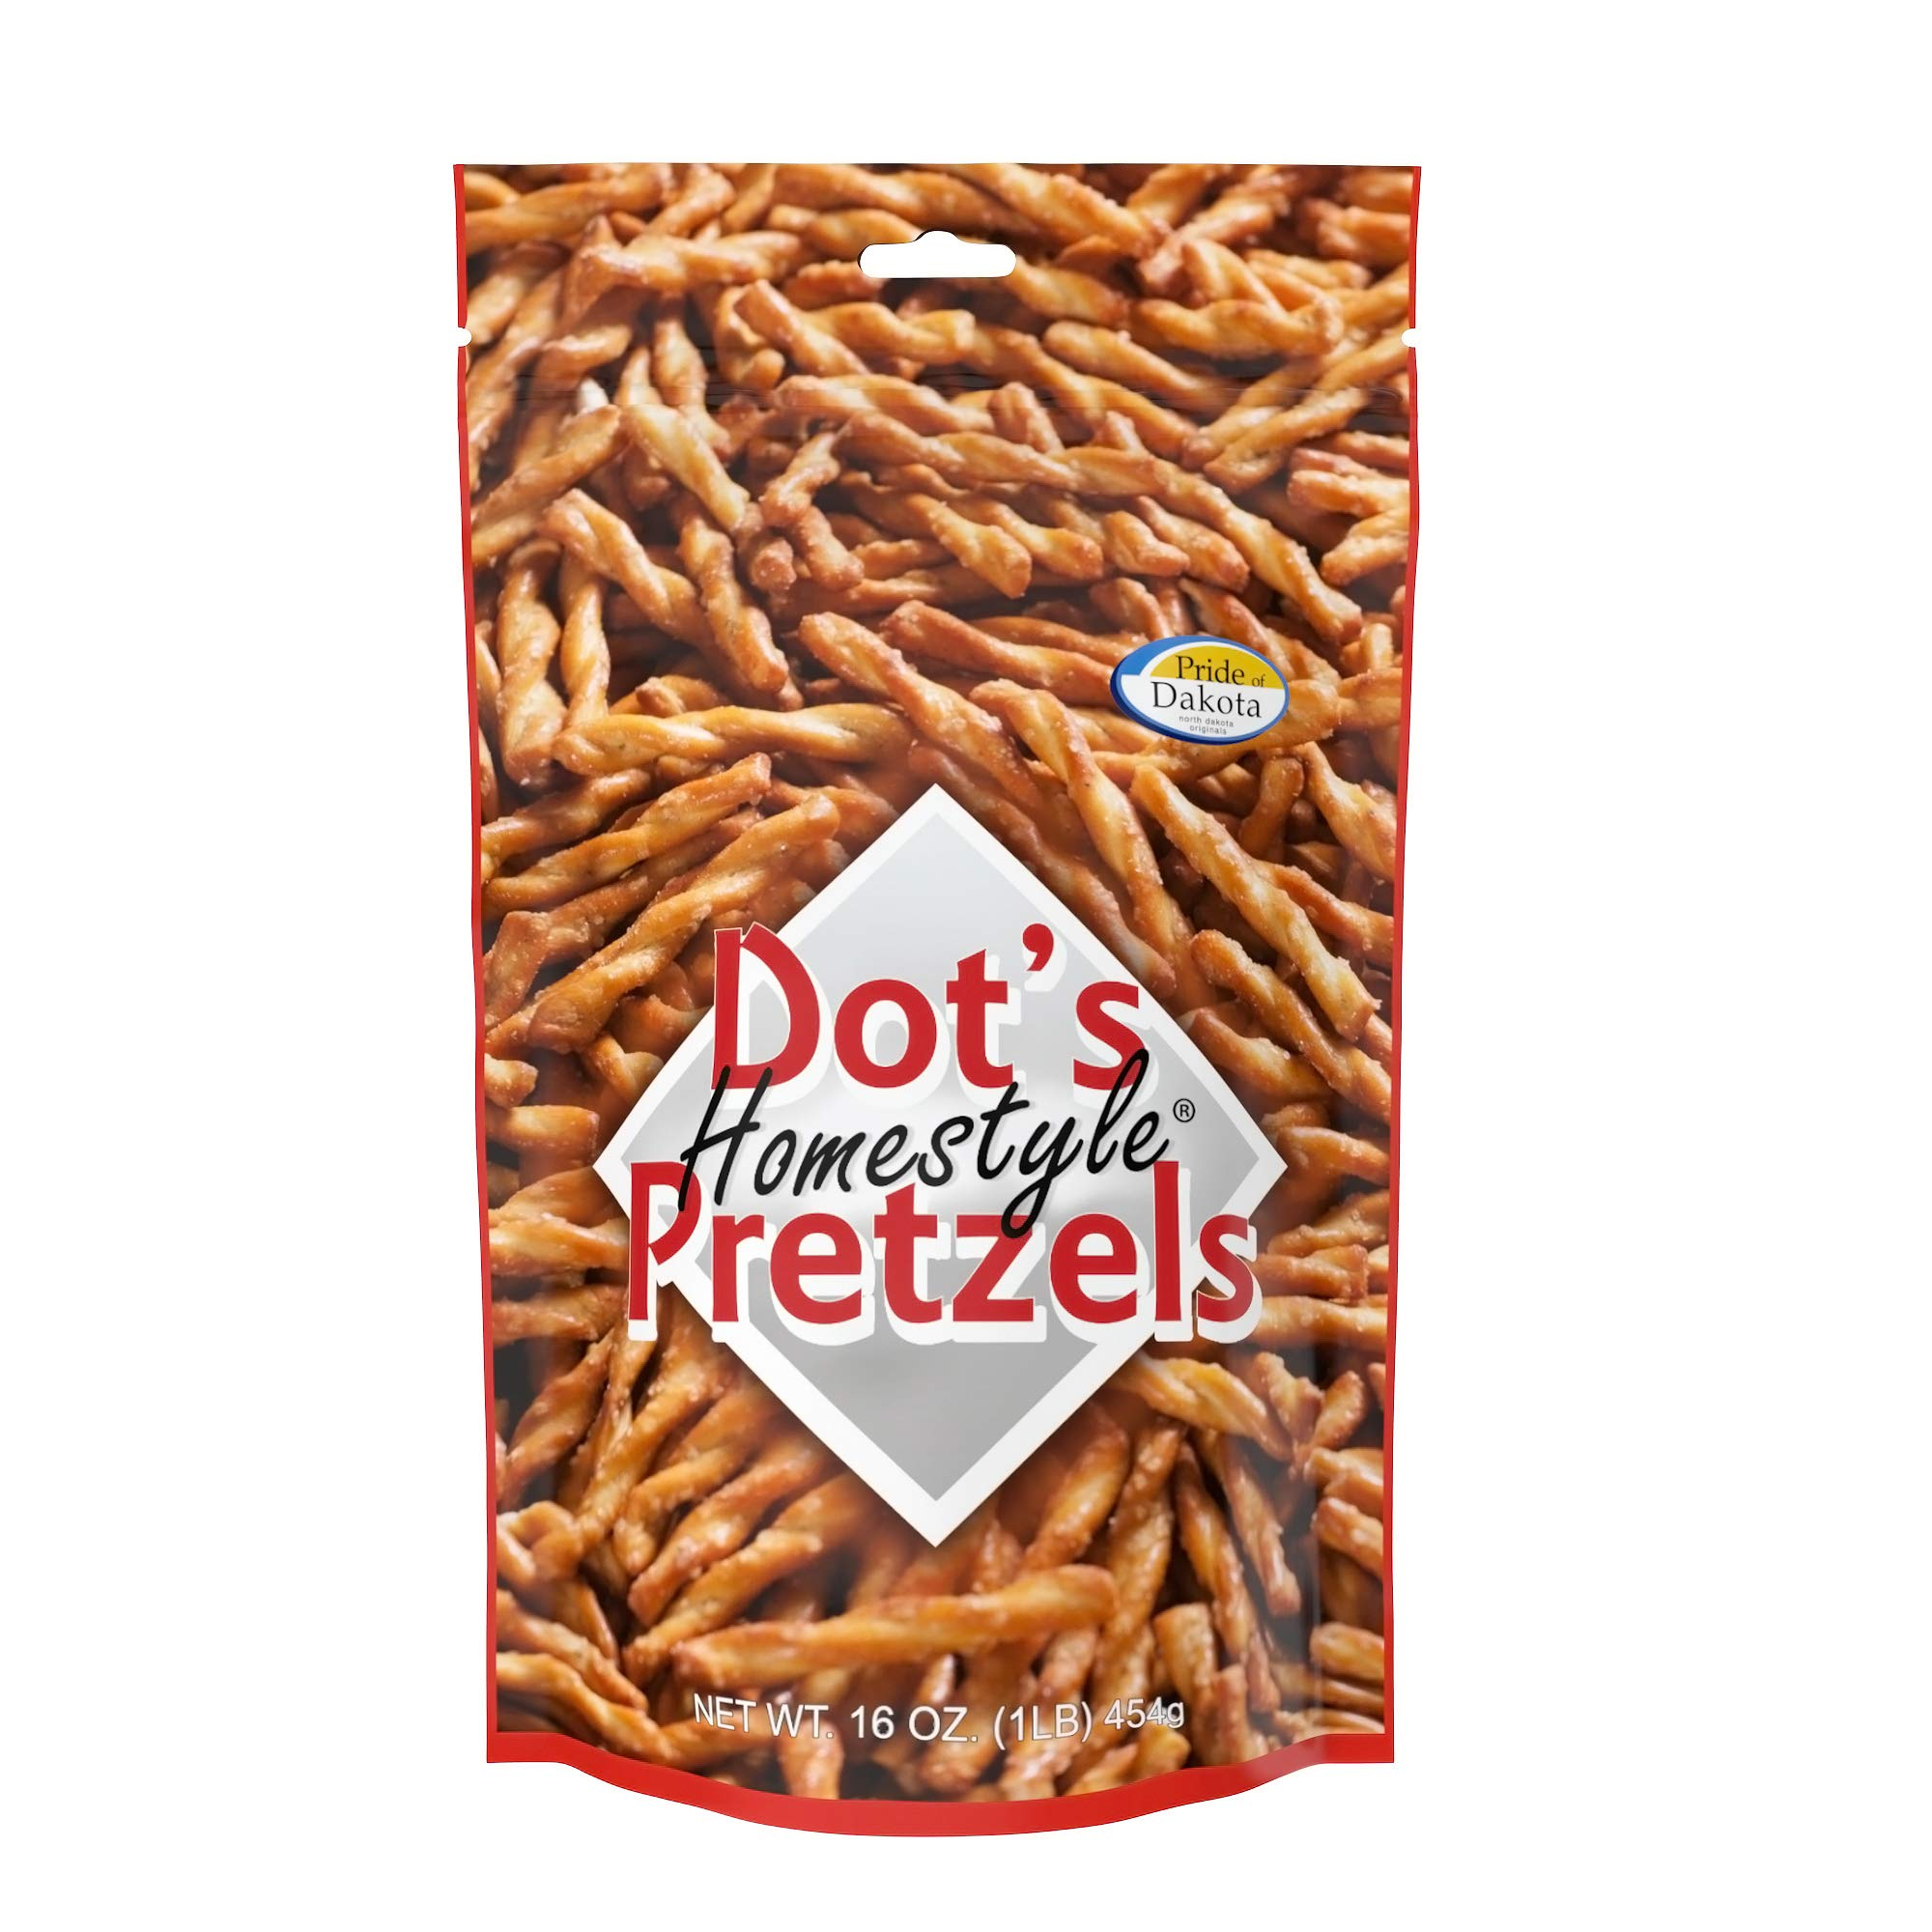 Dot's Homestyle Pretzels 1 lb. Bag (5 Bags) 16 oz. Seasoned Pretzel Snack Sticks (Packaging May Vary) by Dot's Homestyle Pretzels